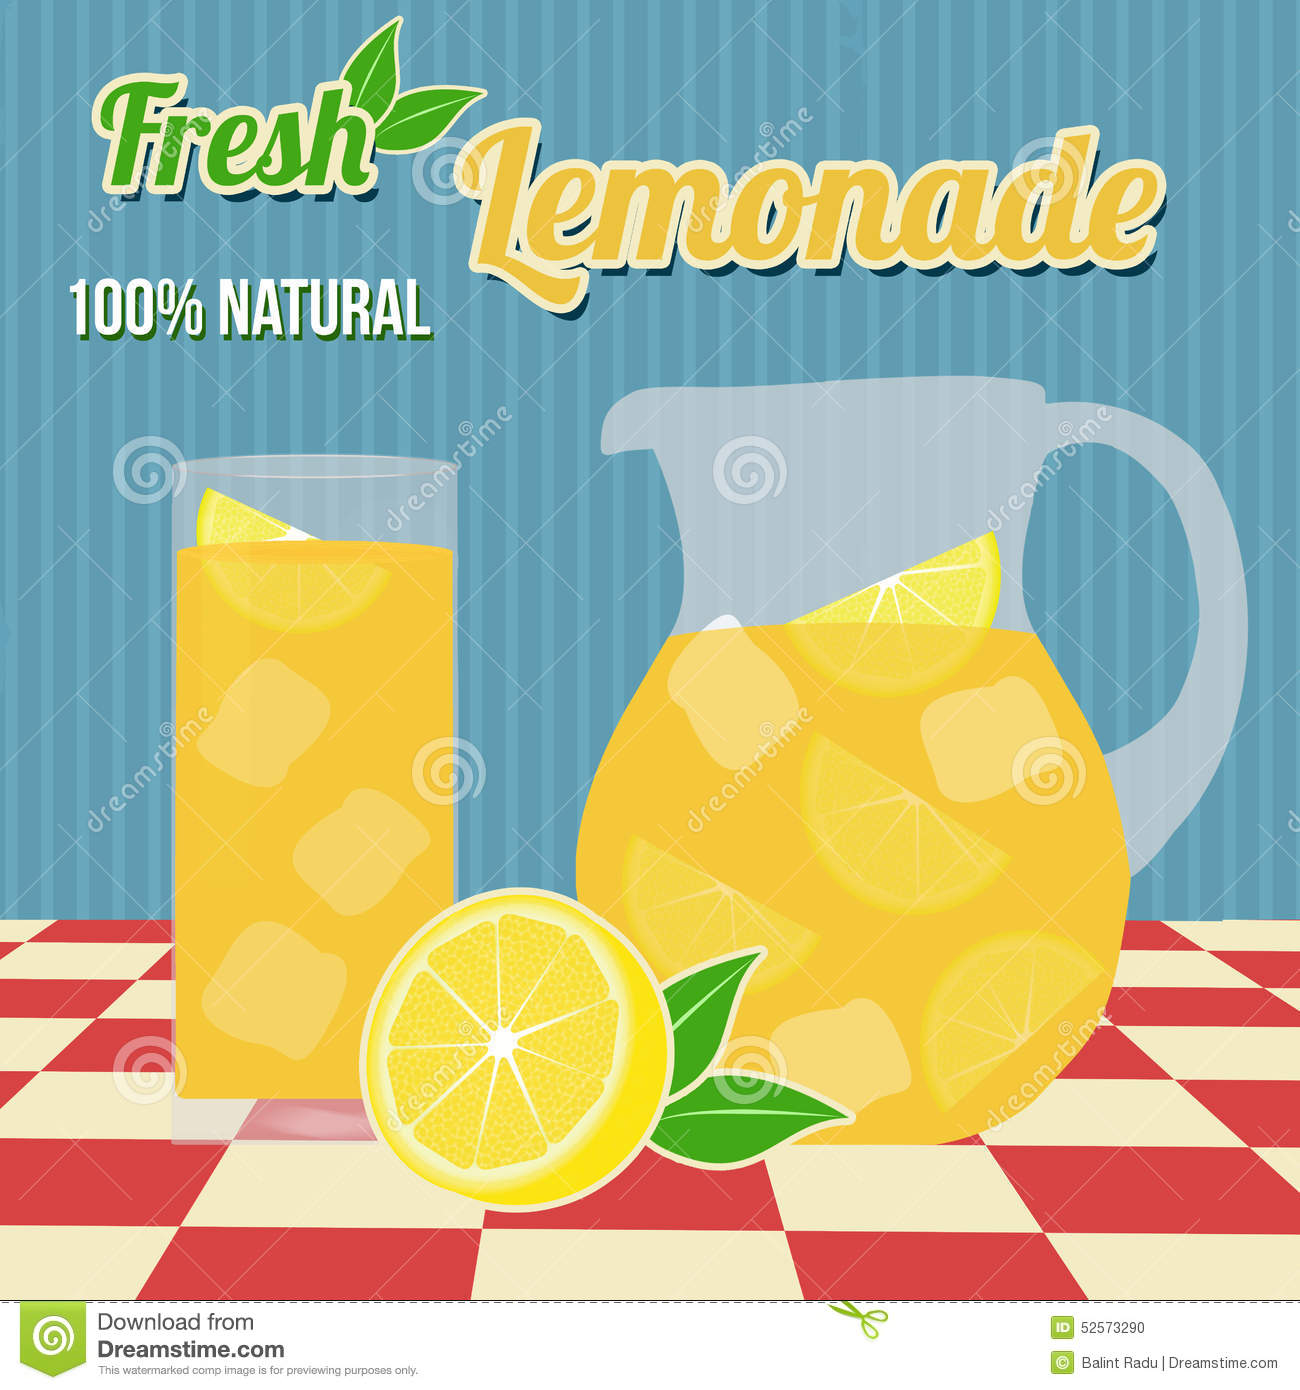 Lemonade Poster Stock Vector - Image: 52573290